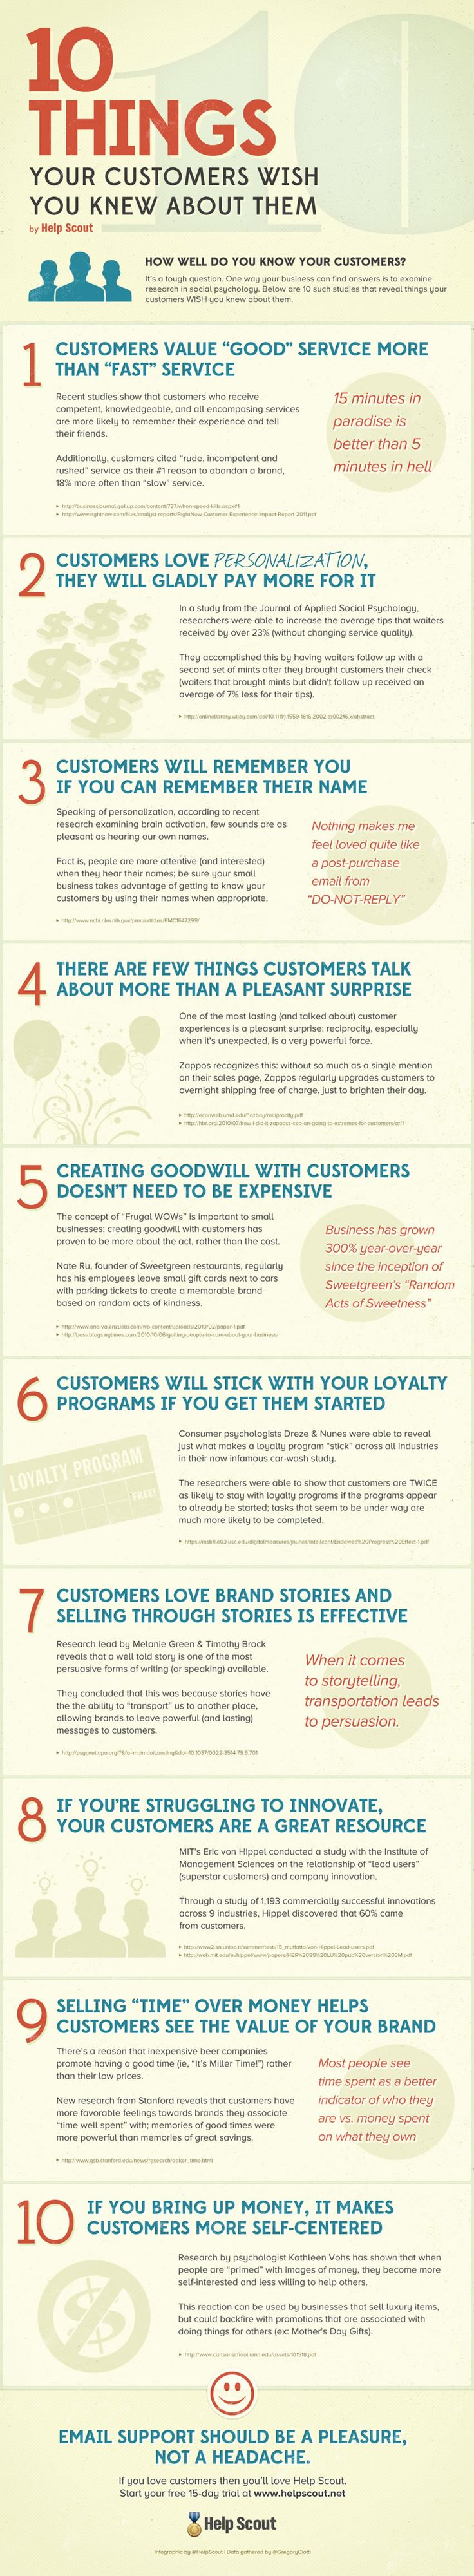 10 Things You Can Learn From Your Customers [Infographic]